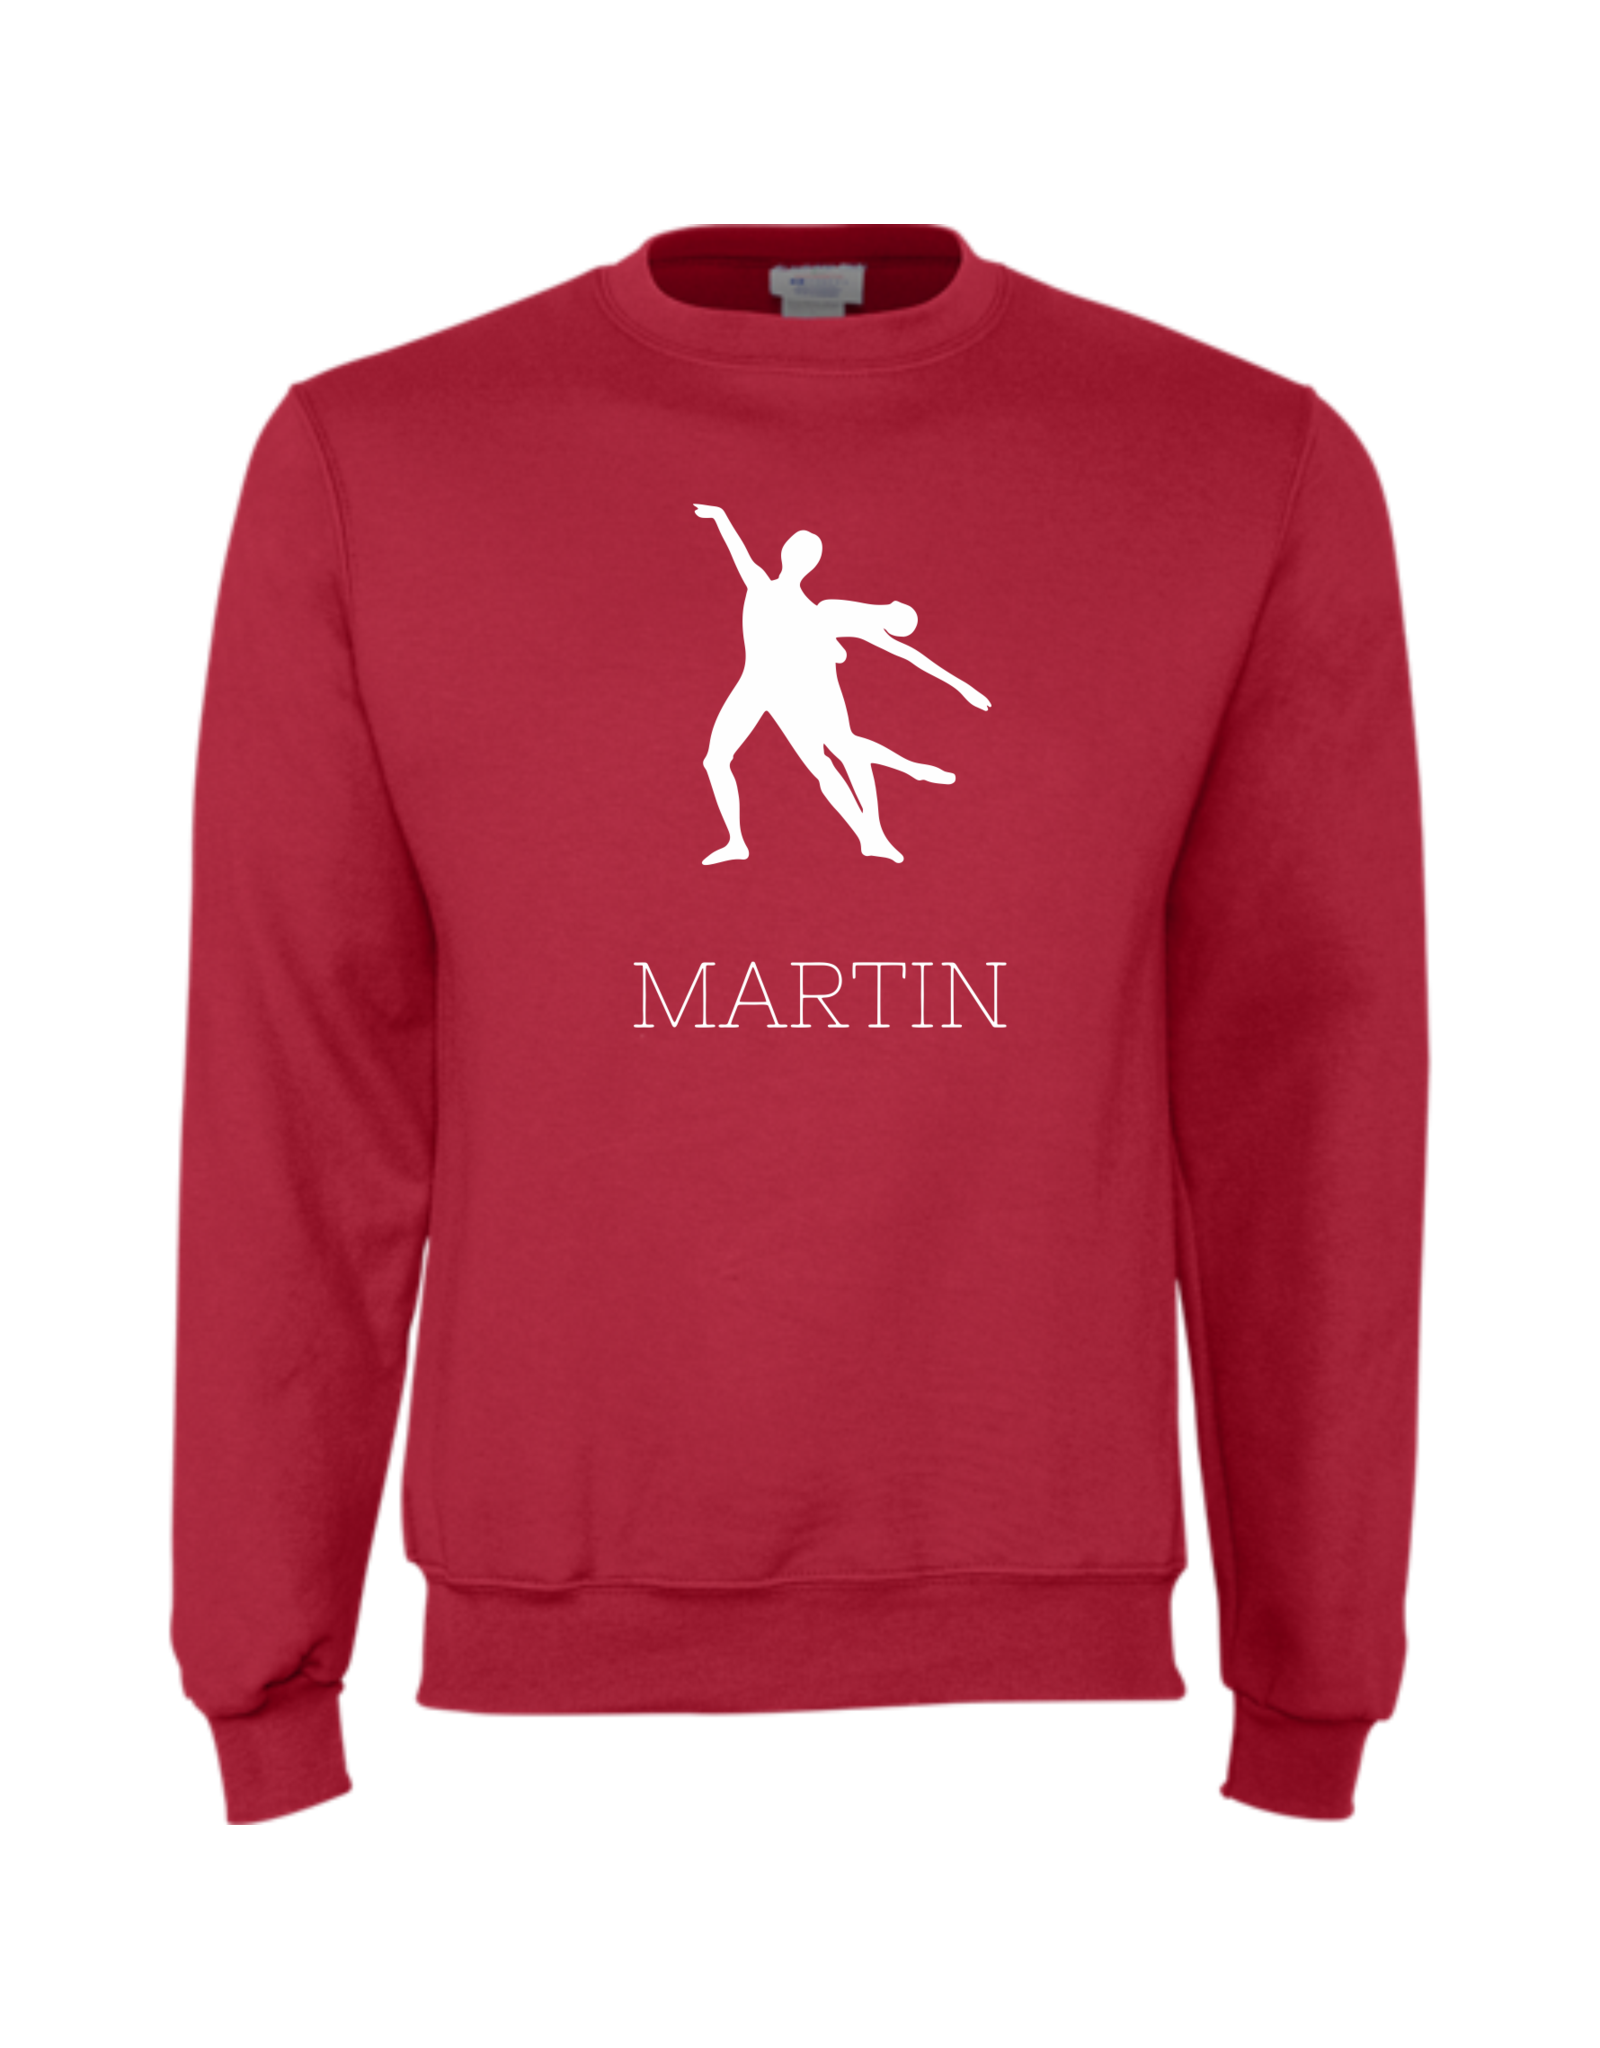 Champion Martin Crew neck sweater - Youth